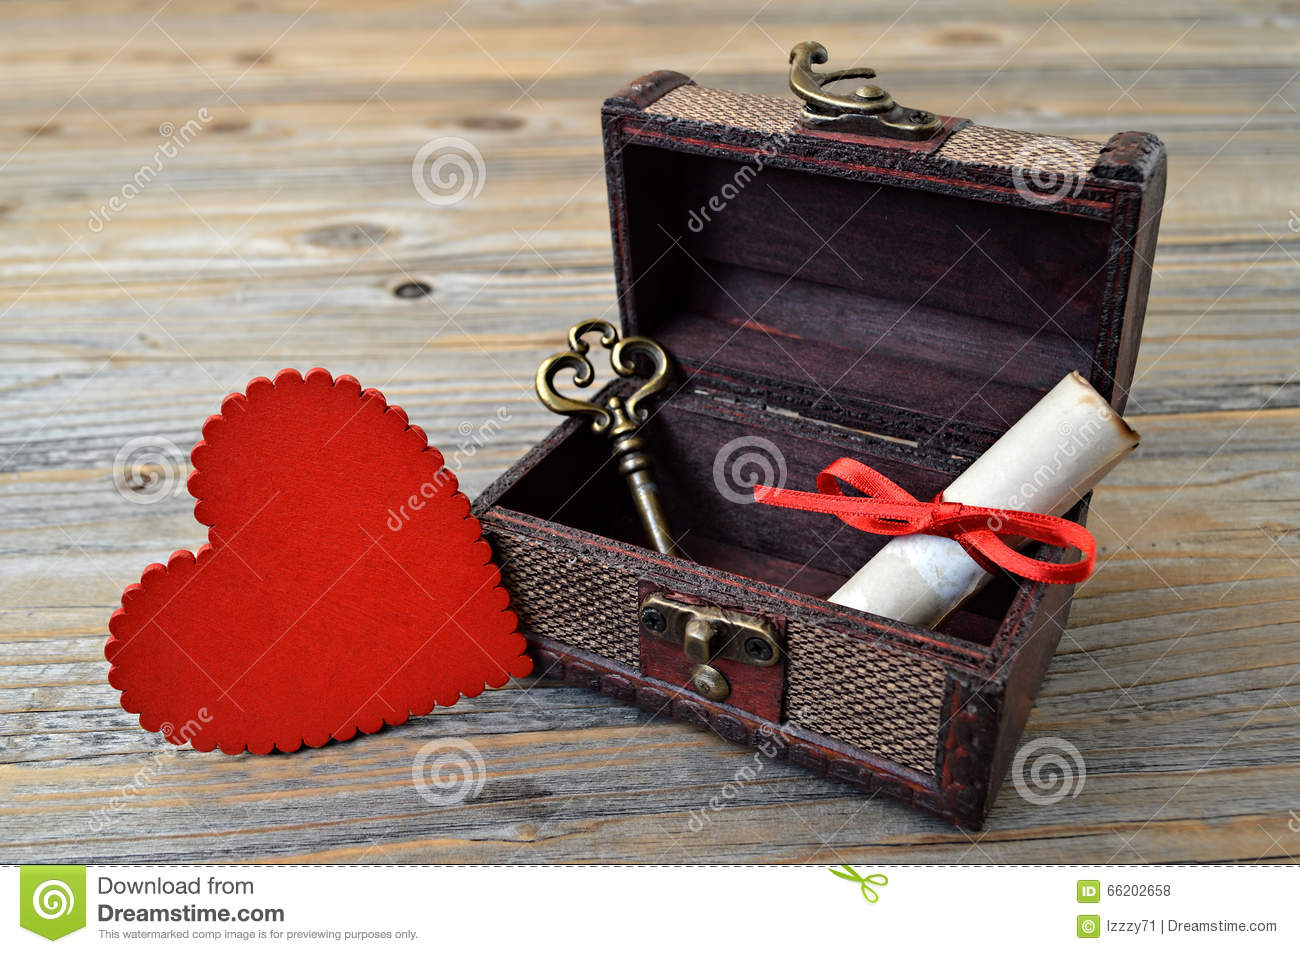 Fotos De Archivo Cofre Del Tesoro Por  pleto De Las Monedas Y De La Gema De Oro Image31021453 further Stock Photo Valentines Heart Love Letter Key Treasure Chest Wooden Background Image66202658 together with Watch furthermore Mini Treasure Chest besides I Materialises 3d Printed Wood Challenge Contestants Design Objects With New Wood Material. on wooden treasure chest